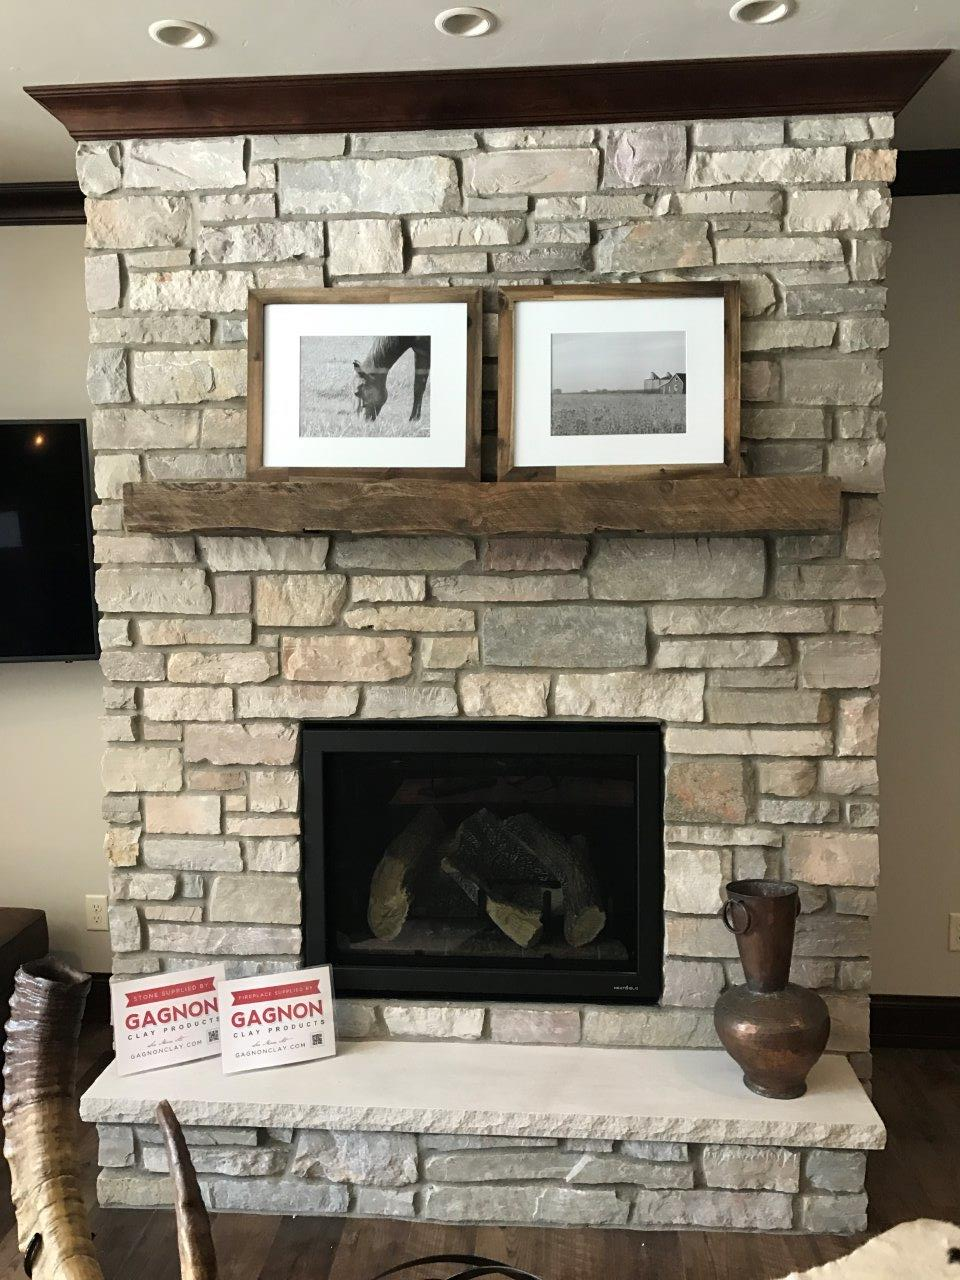 Connect The Colors >> Halquist Chilton Ledgestone - Fireplace - Gagnon Clay Products